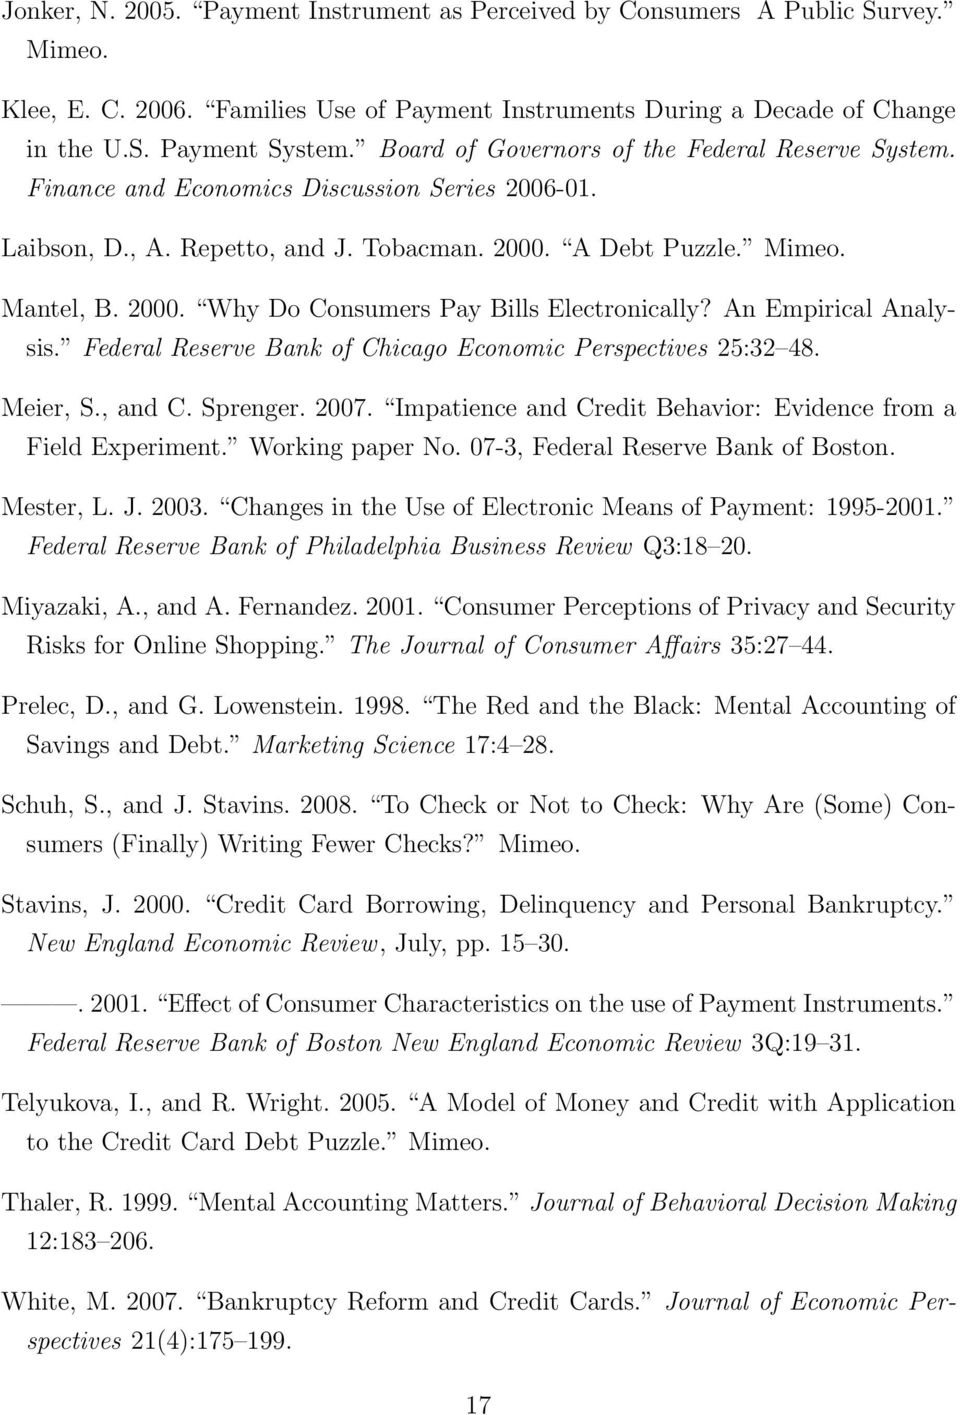 An Empirical Analysis. Federal Reserve Bank of Chicago Economic Perspectives 25:32 48. Meier, S., and C. Sprenger. 2007. Impatience and Credit Behavior: Evidence from a Field Experiment.